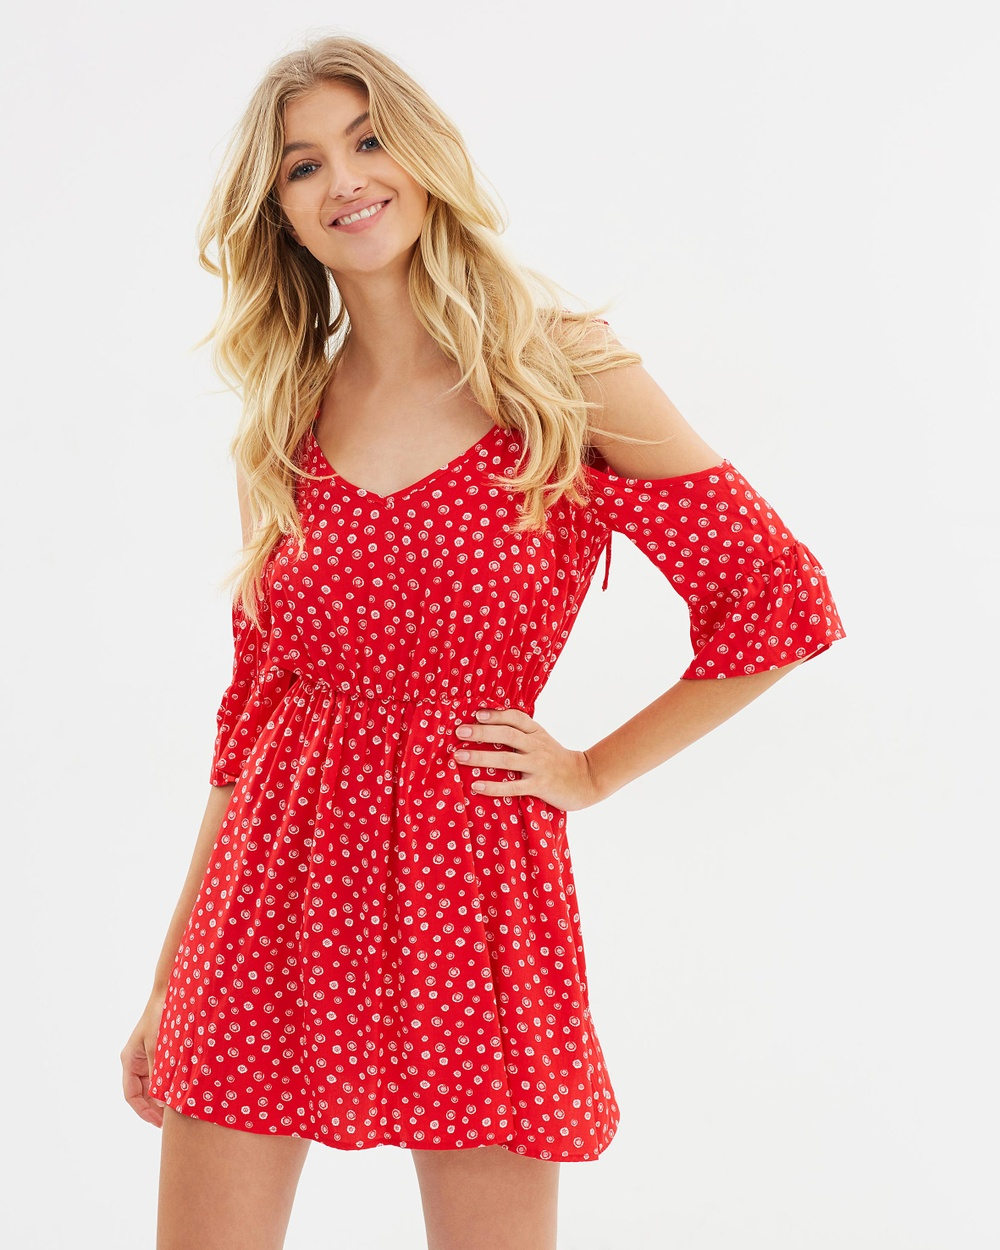 Atmos & Here ICONIC EXCLUSIVE Melissa Cold Shoulder Dress Printed Dresses Red Cute Daisy ICONIC EXCLUSIVE Melissa Cold Shoulder Dress